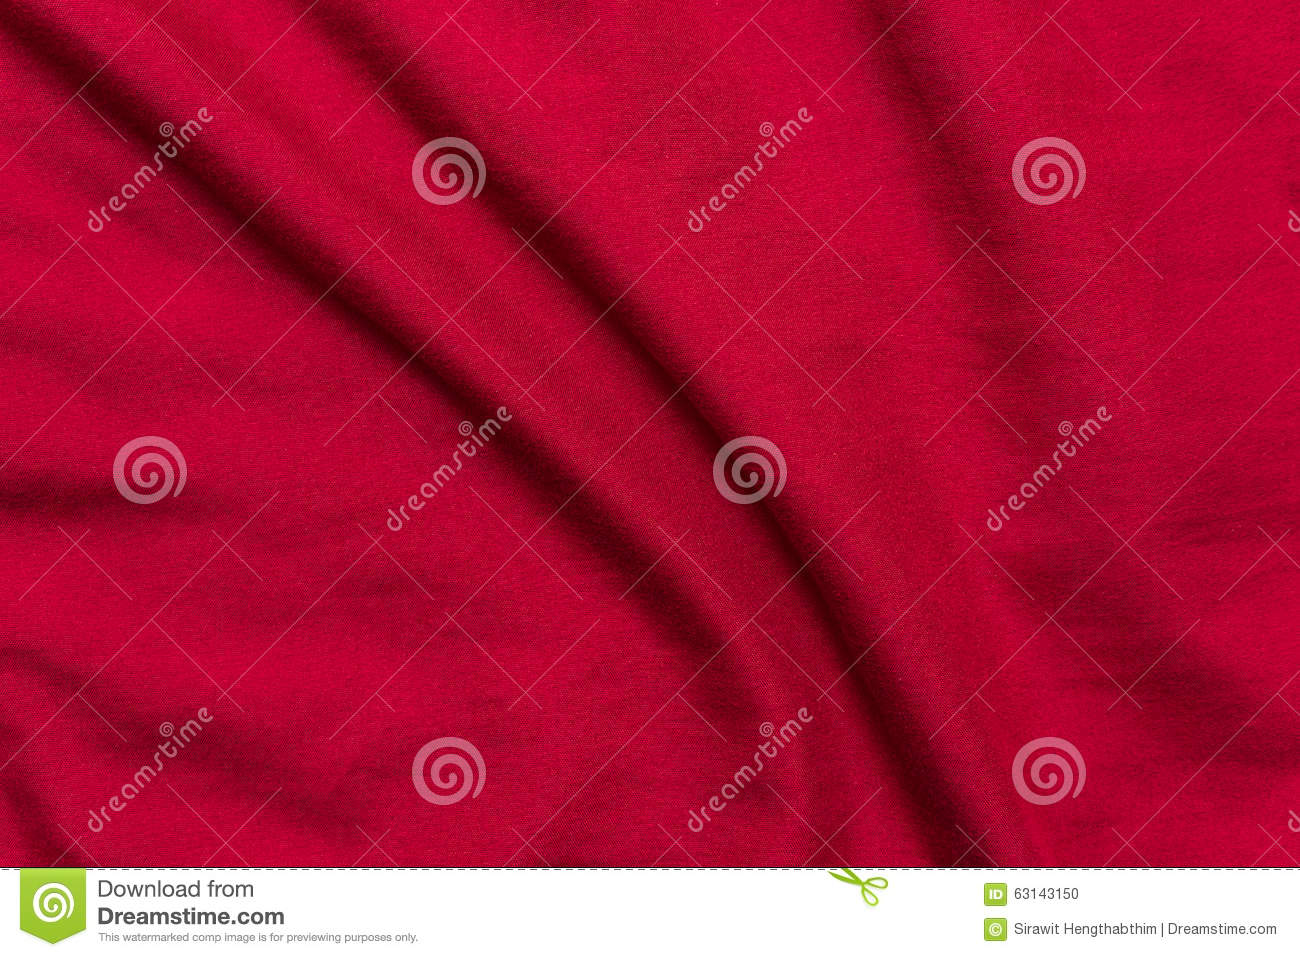 Pink bed sheet texture - Red Bed Sheets Background Texture